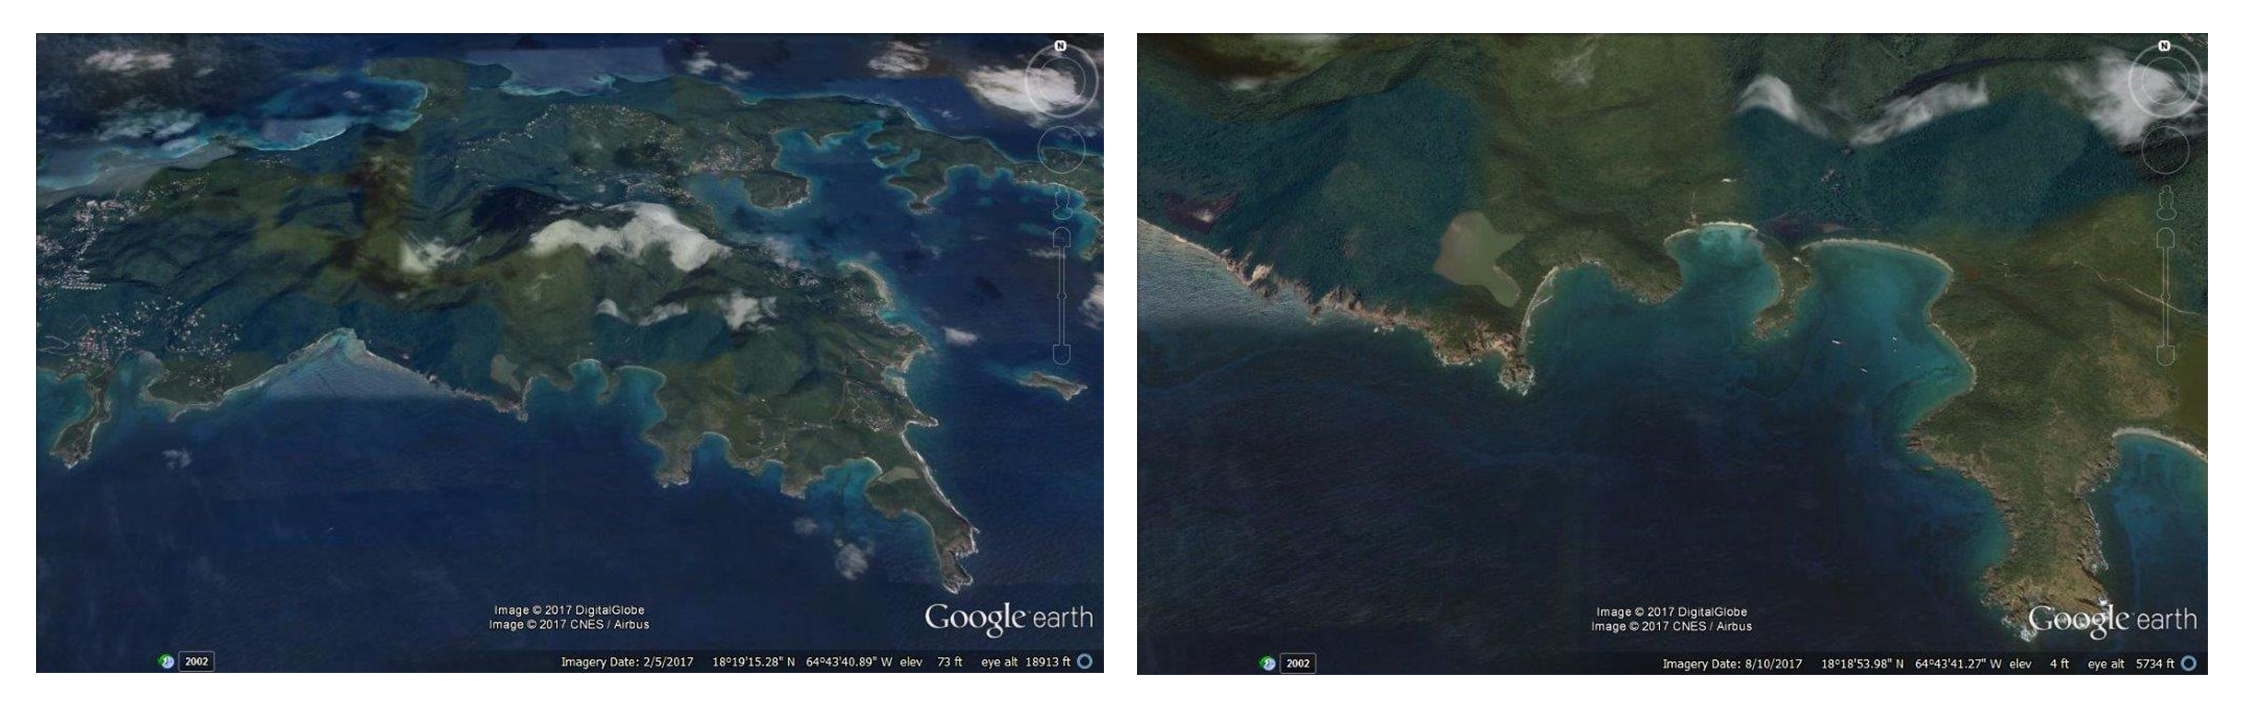 Virgin Islands Coral Global Climate Change